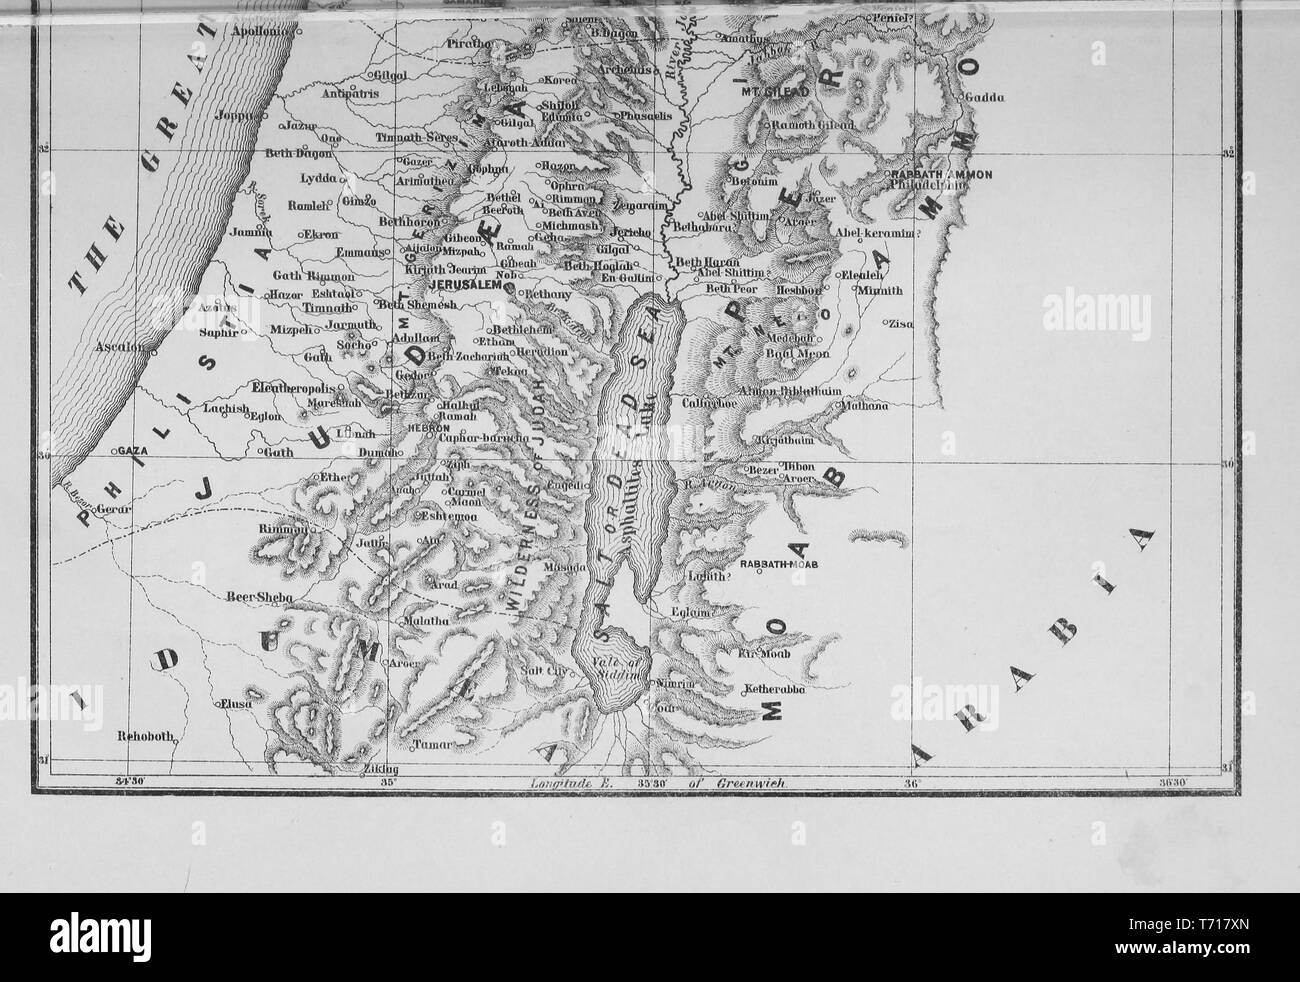 Map Egypt Black and White Stock Photos & Images - Alamy on